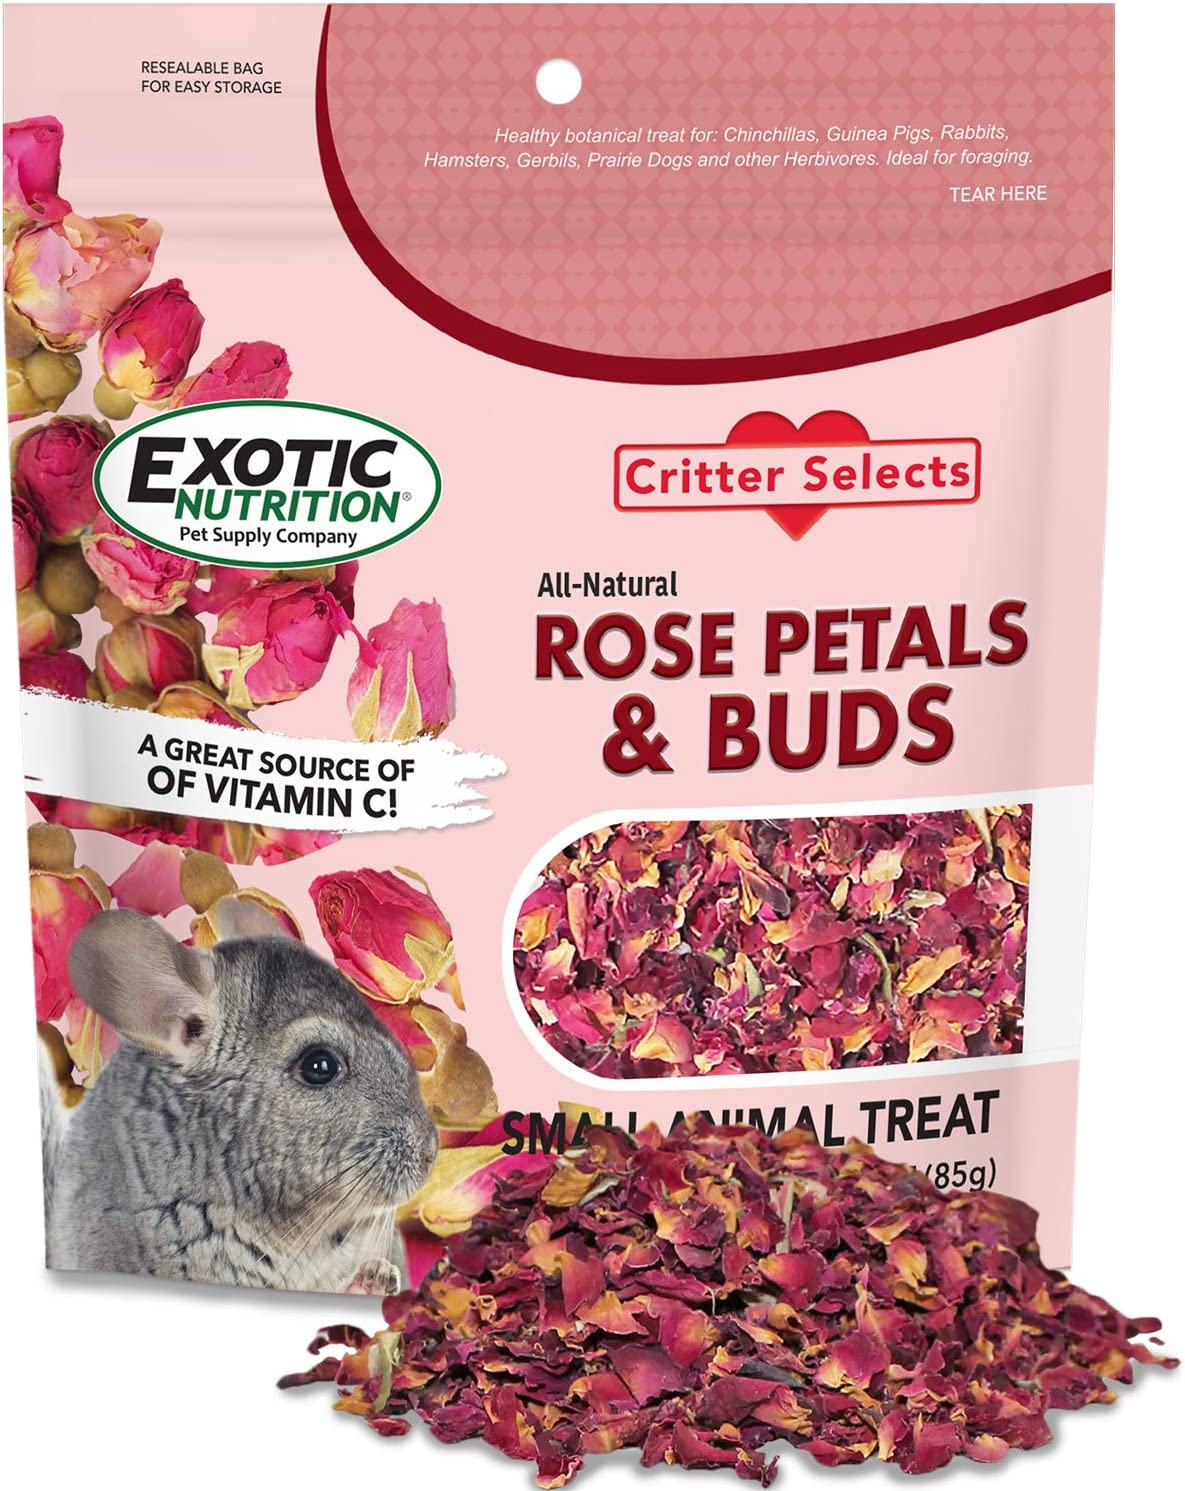 Rose Petals Buds 0.85 oz. Fort Worth Mall - Healthy Her Flower Dried Ranking TOP8 Natural